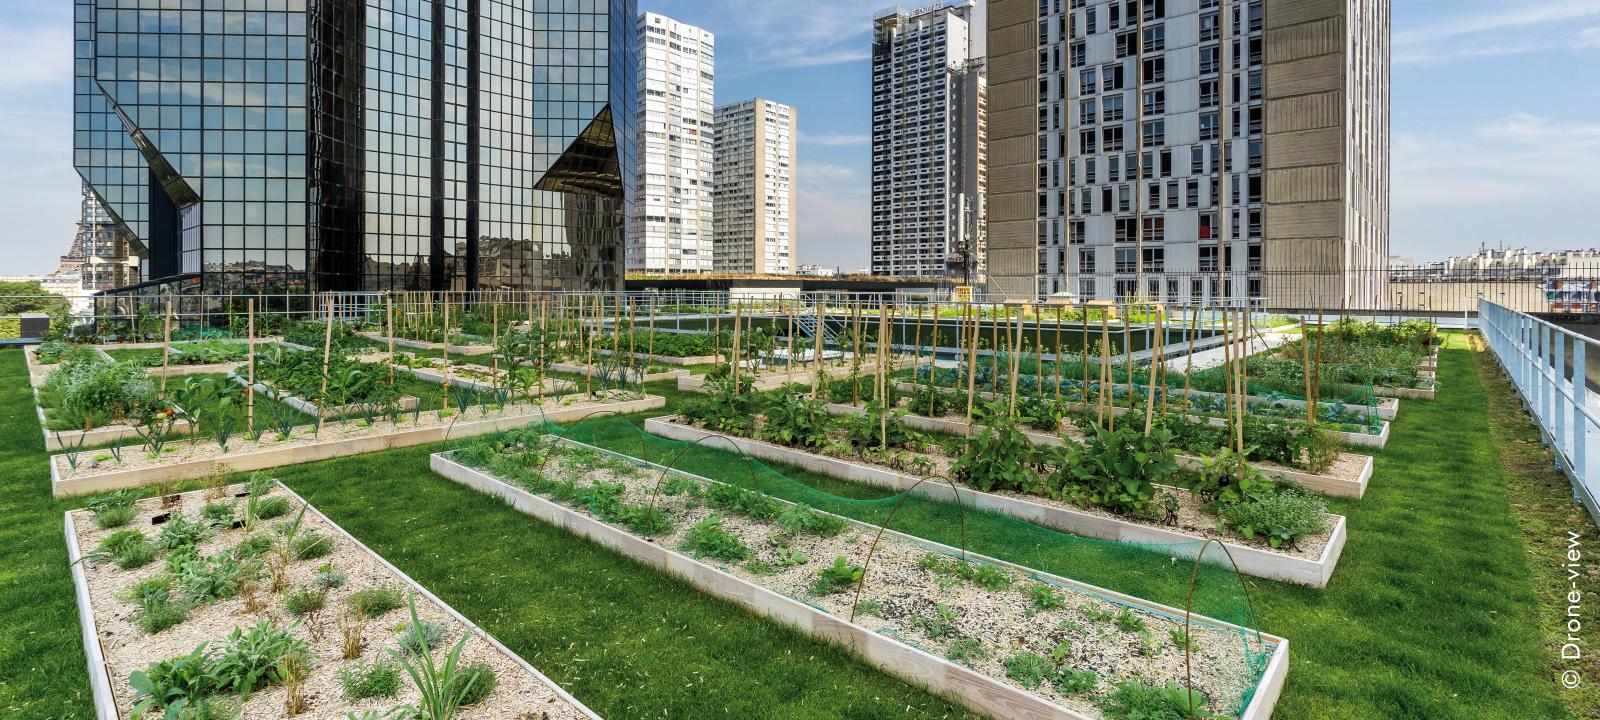 Urban Rooftop Farming Zinco Green Roof Systems Usa